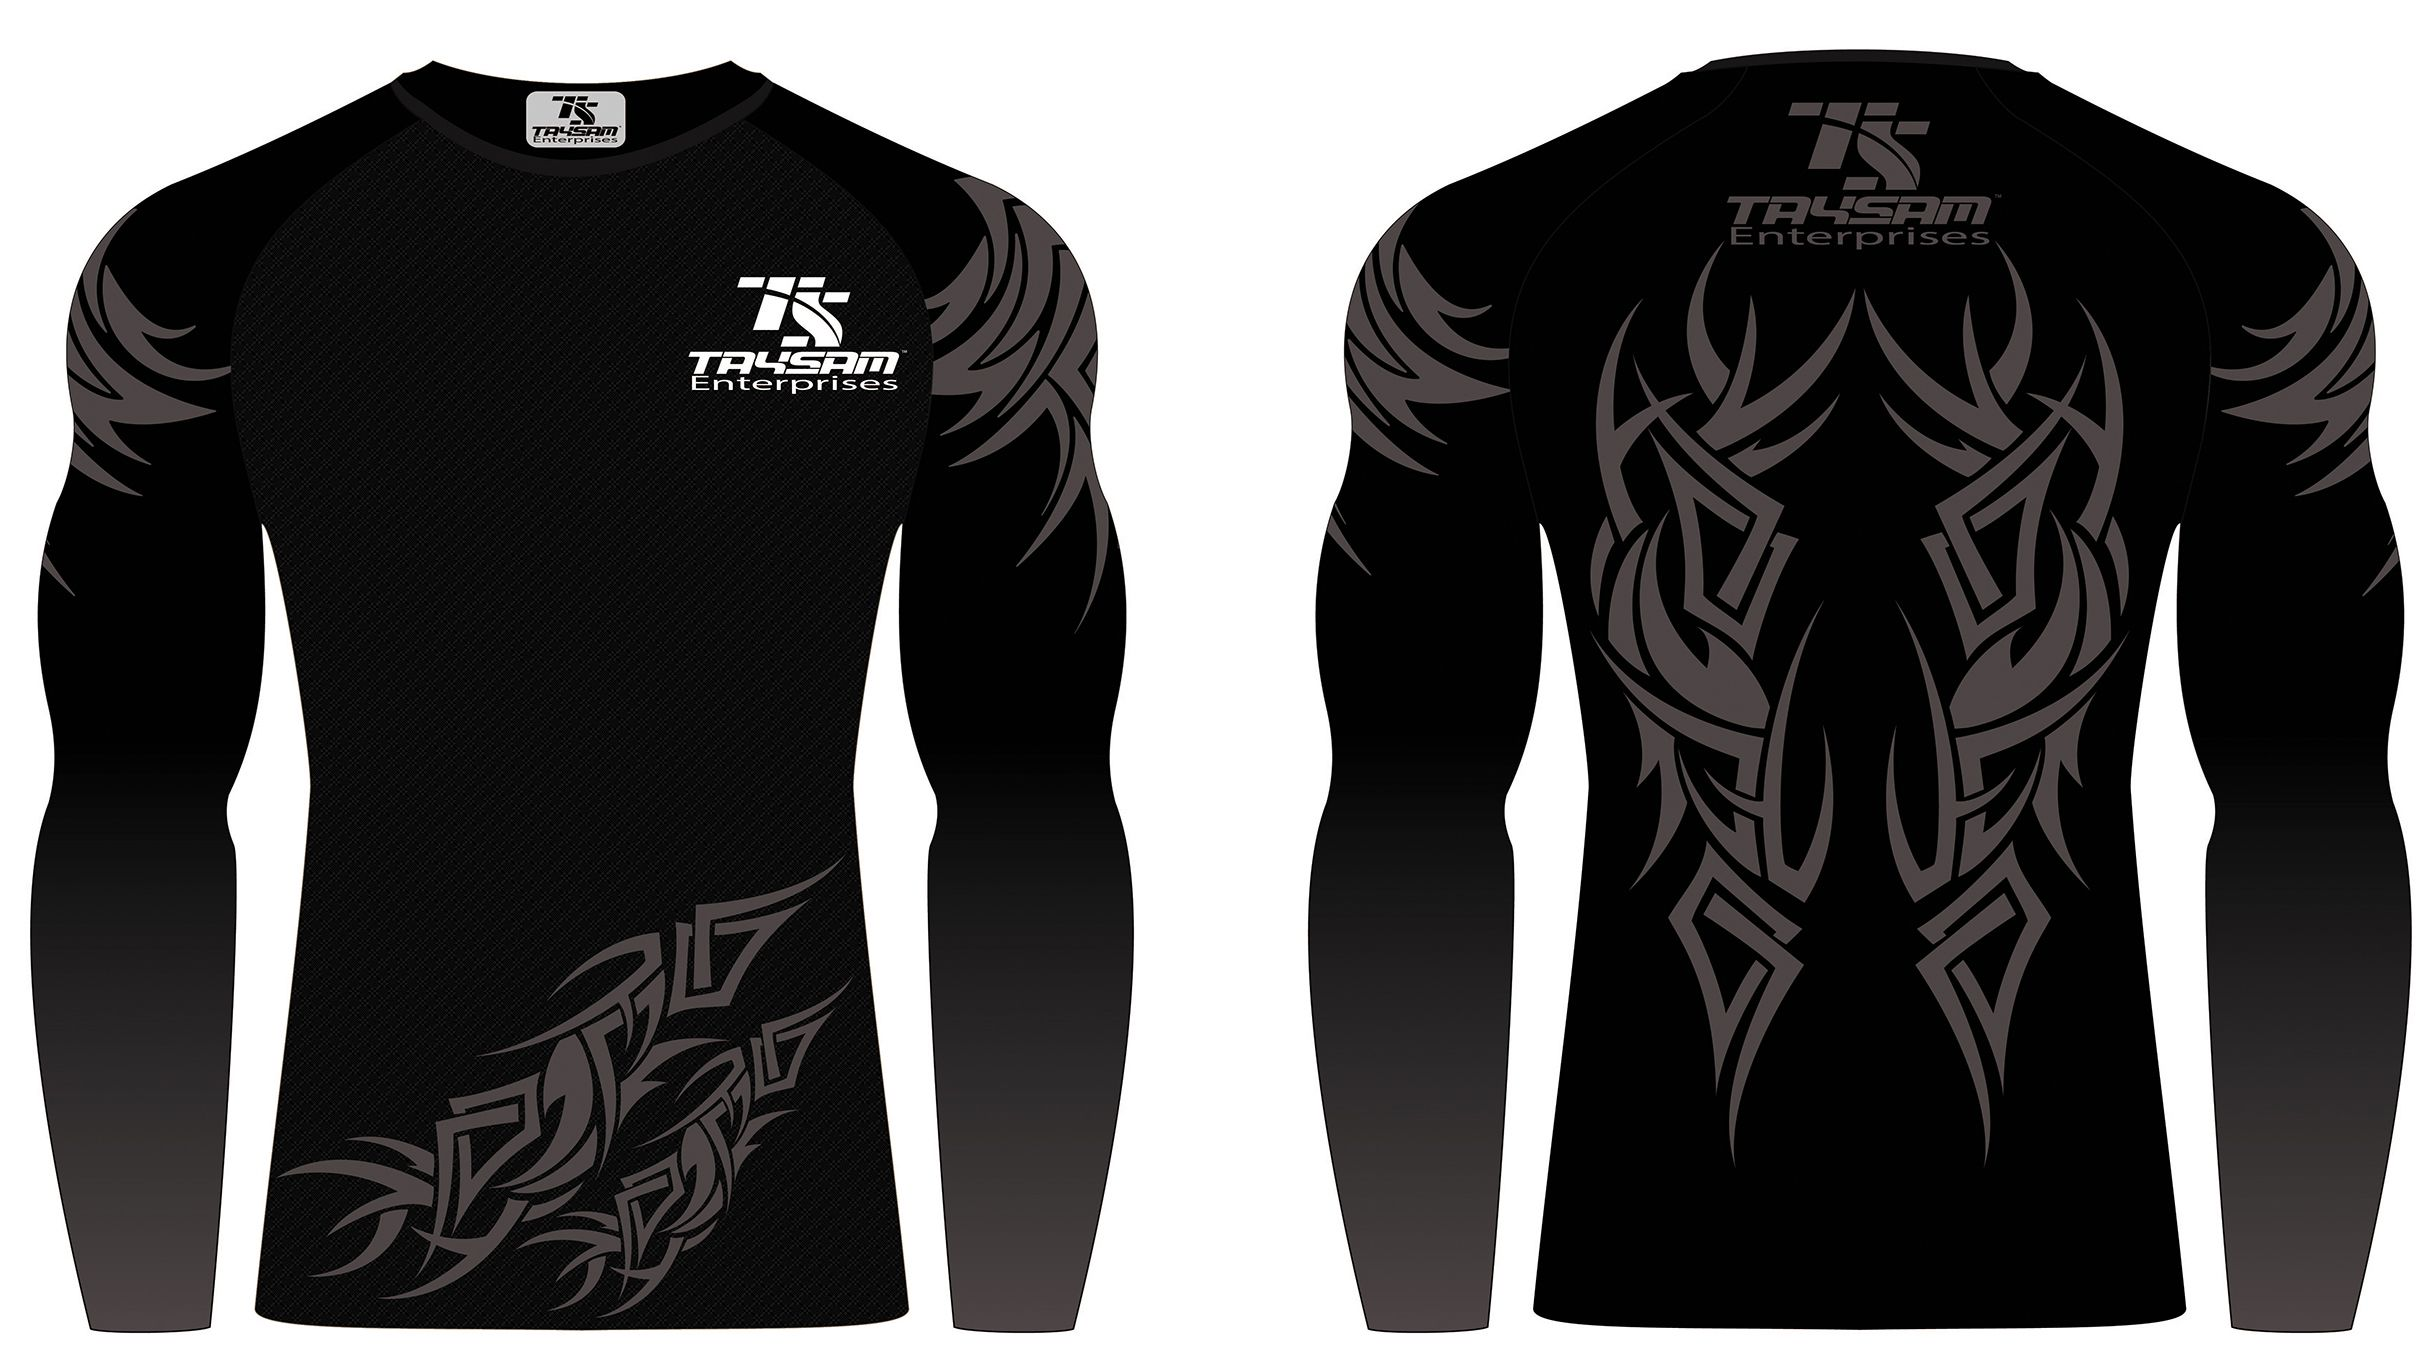 45cad4709 Mockup Design of a compression shirt from original Shirt. Which is 100%  polyester Sublimated.  menfitness  gymwear  workout  sportswears   fitnesswear